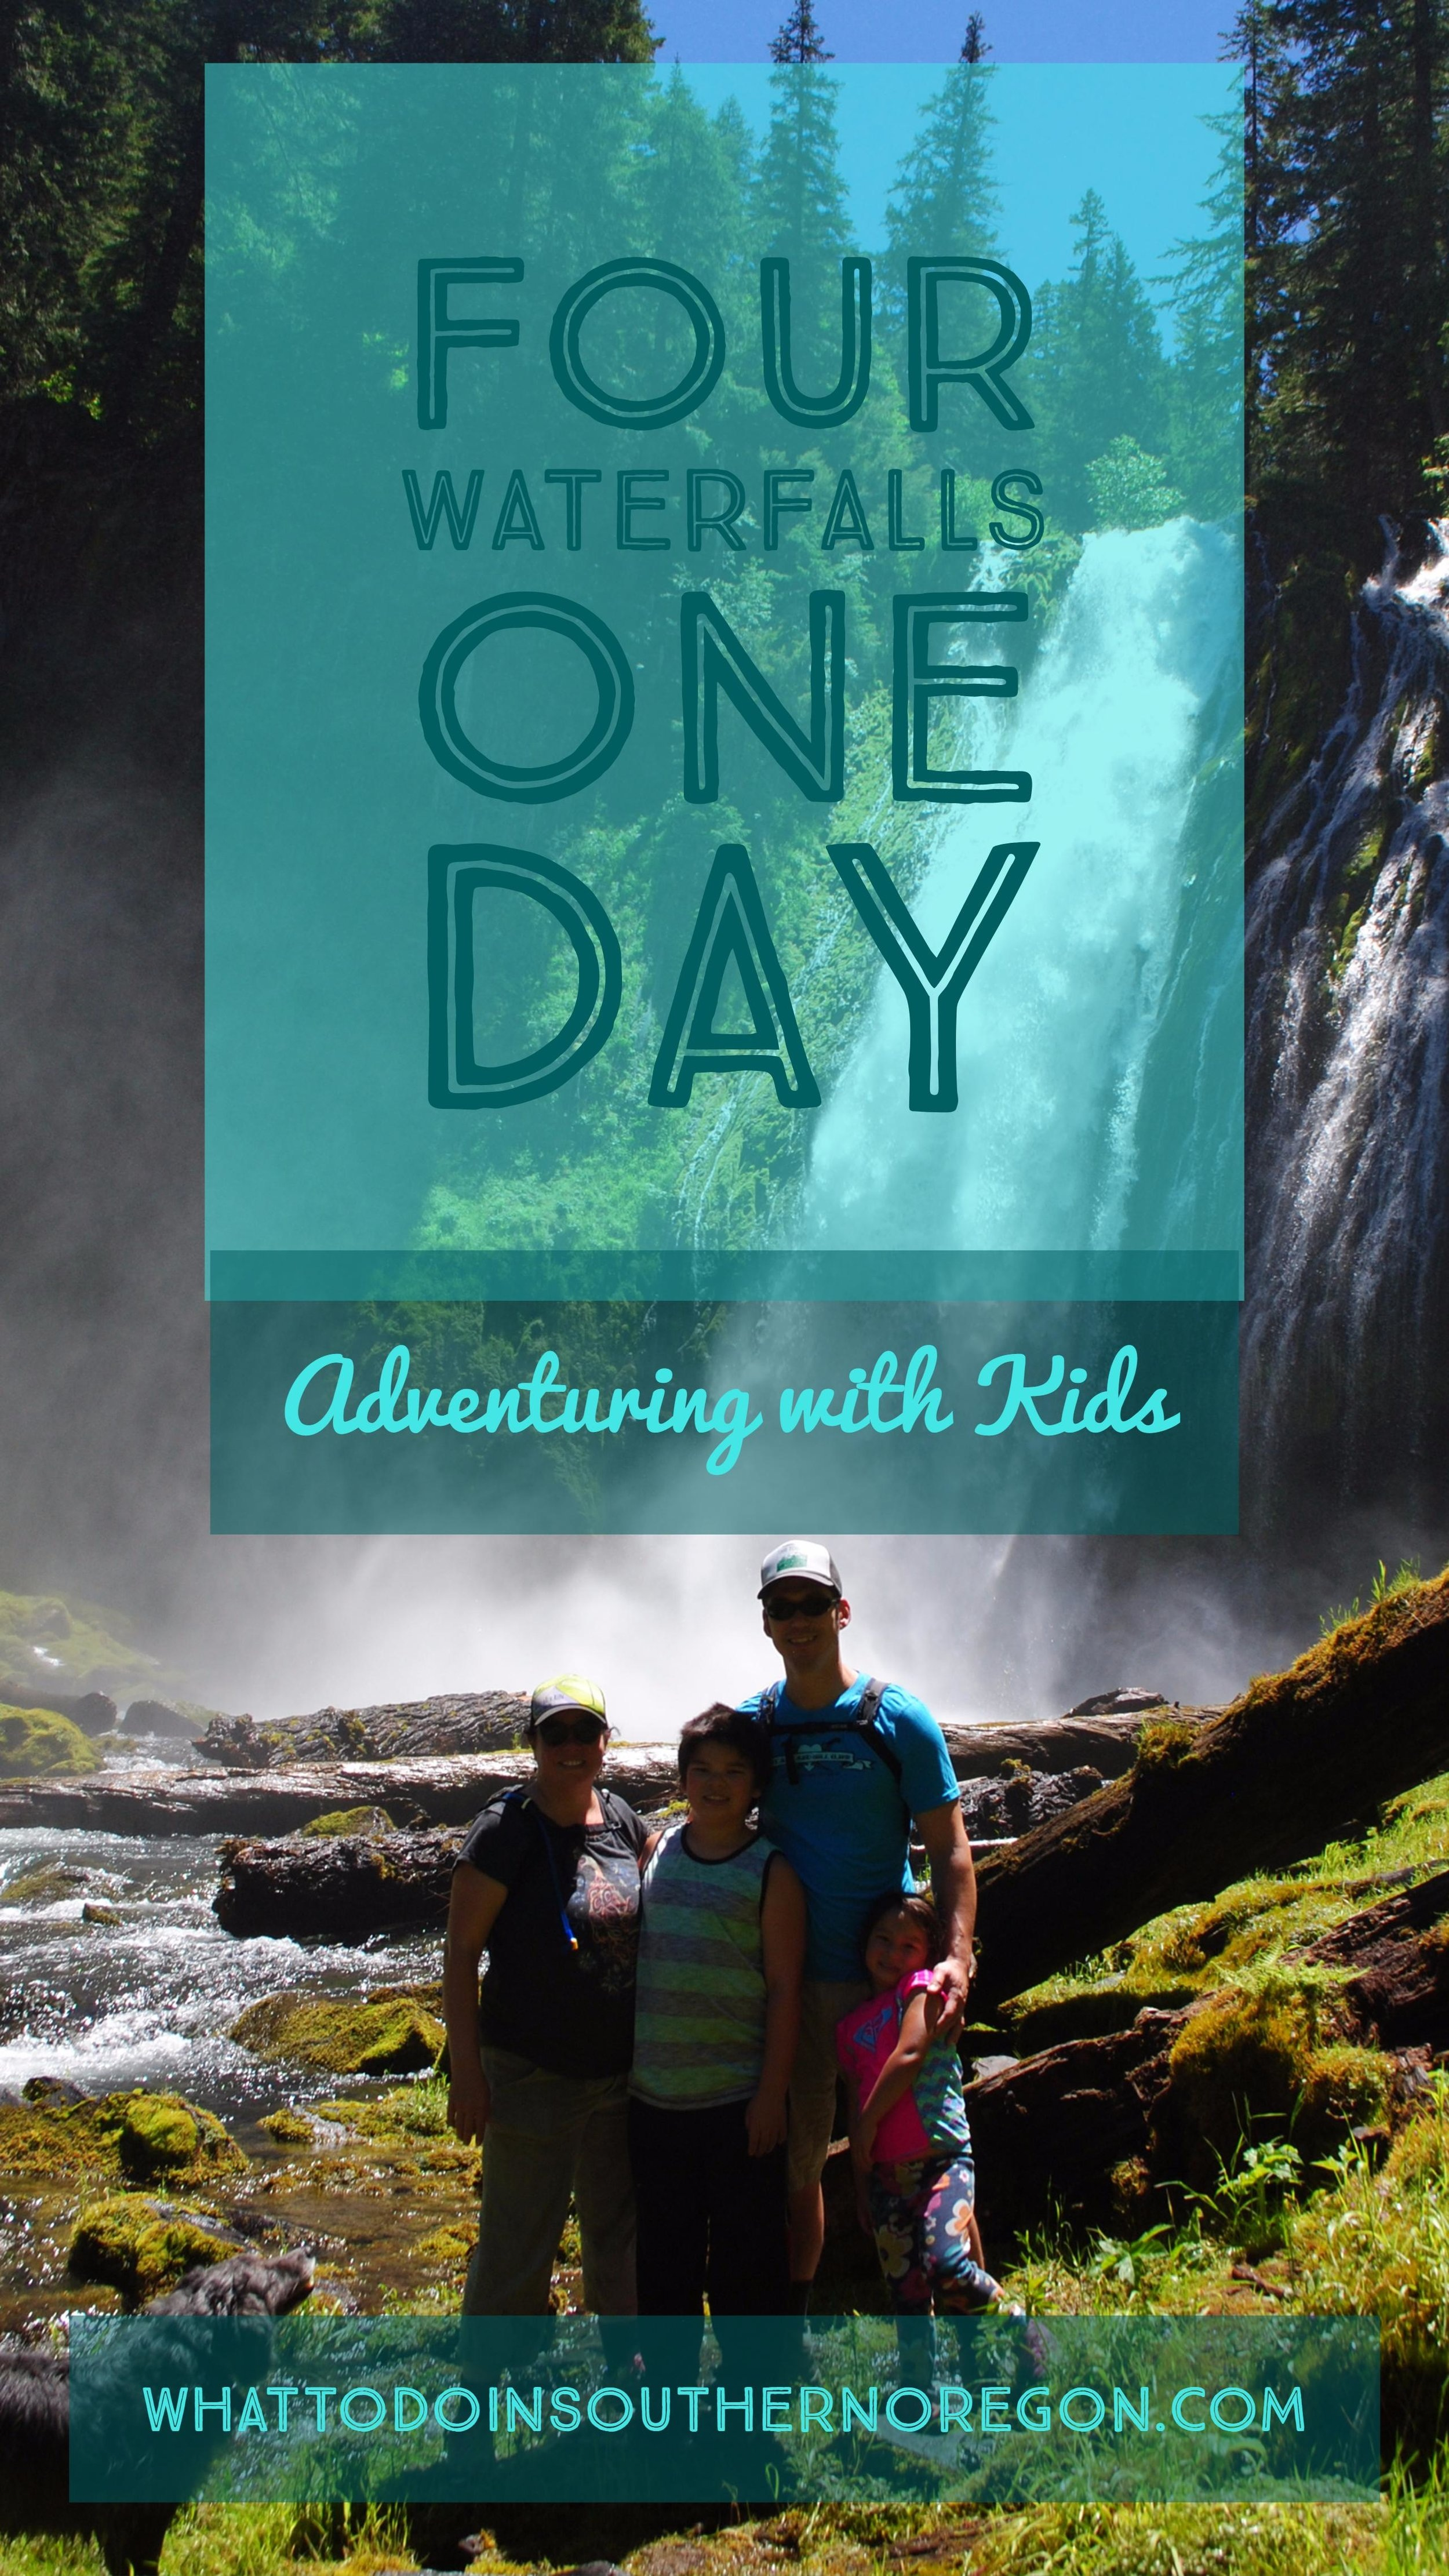 FOUR WATERFALLS, ONE DAY - HIKING ADVENTURES WITH KIDS - What to do in Southern Oregon - Things to do - Douglas County - Lemolo Falls - Warm Springs Falls - Clearwater Falls - Whitehorse Falls